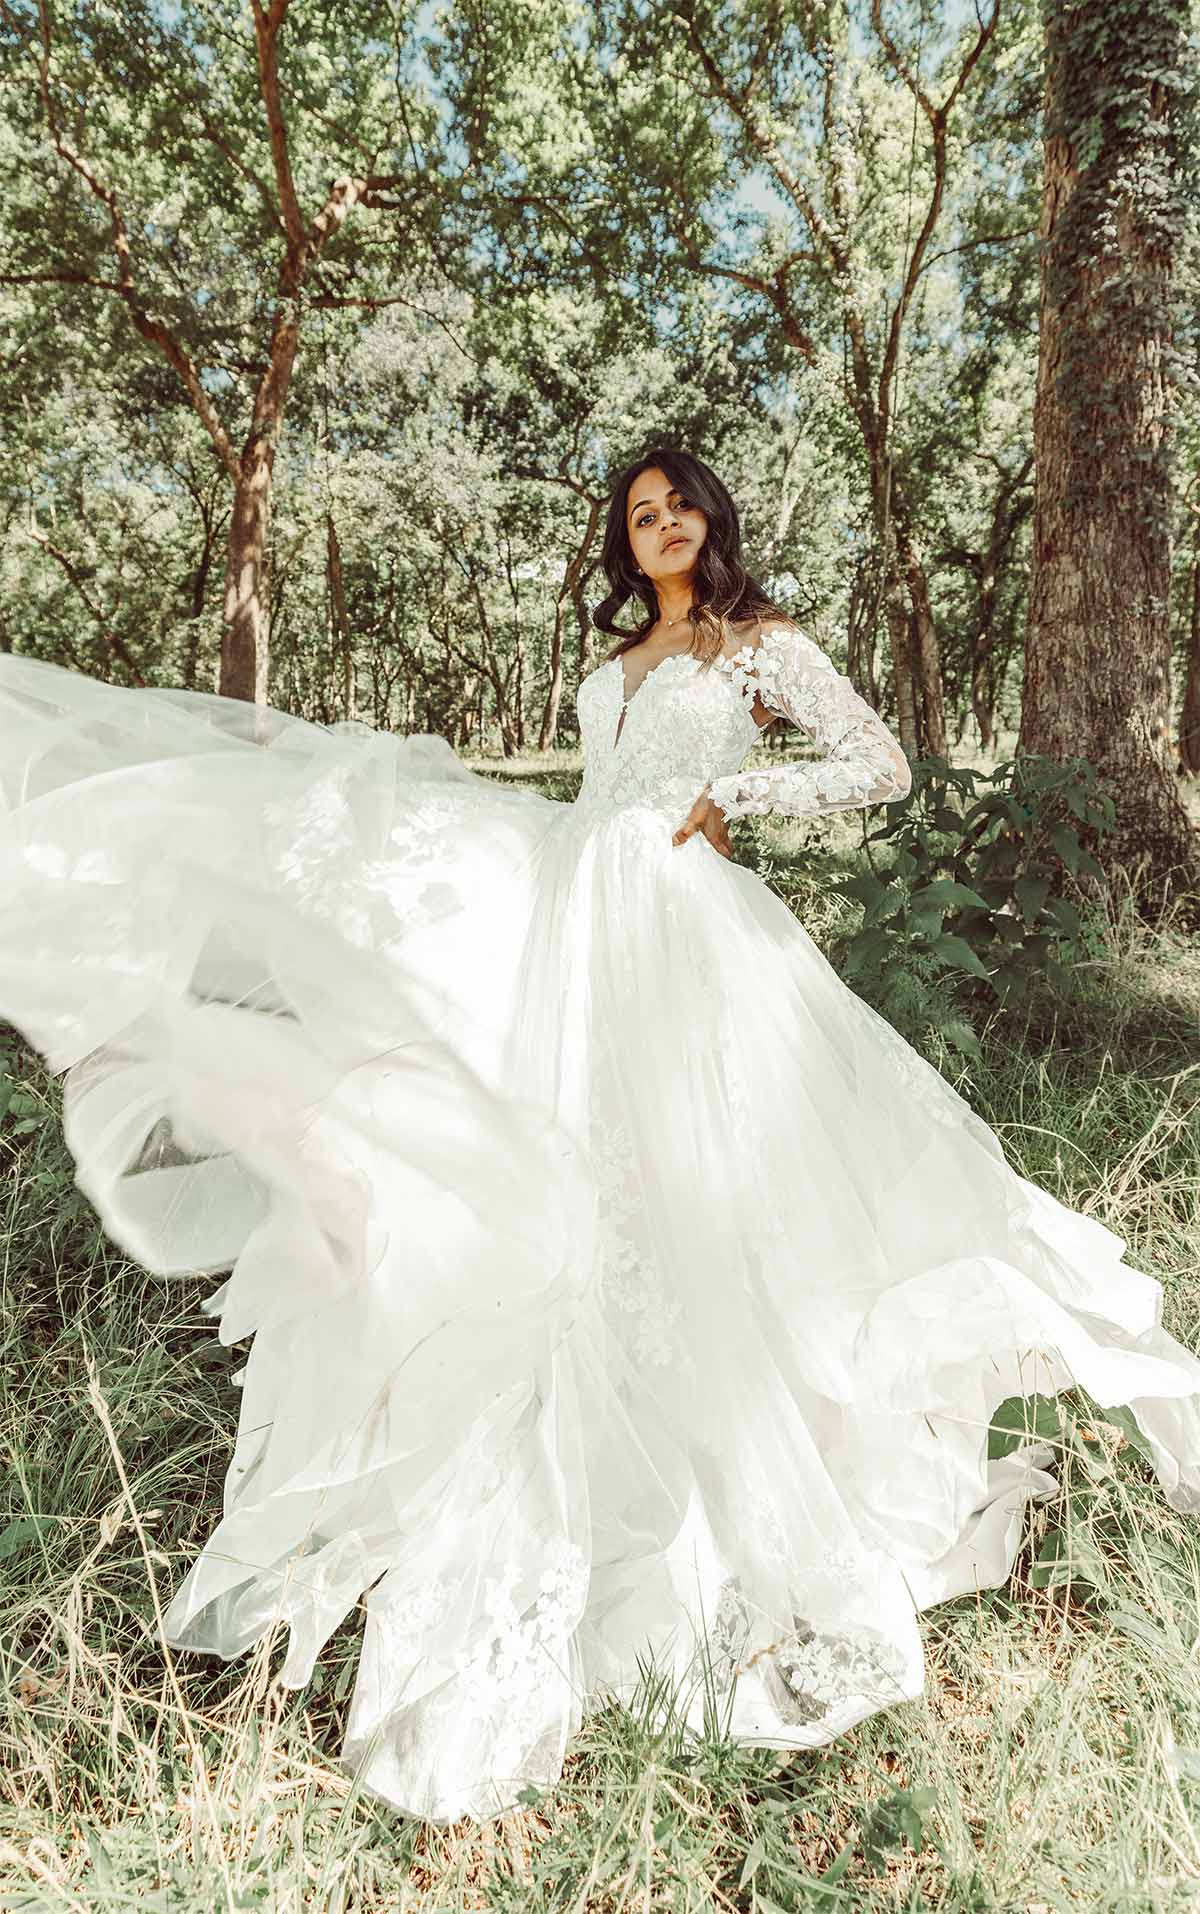 Off The Shoulder Lace Ballgown Wedding Dress With Tiered Skirt ...